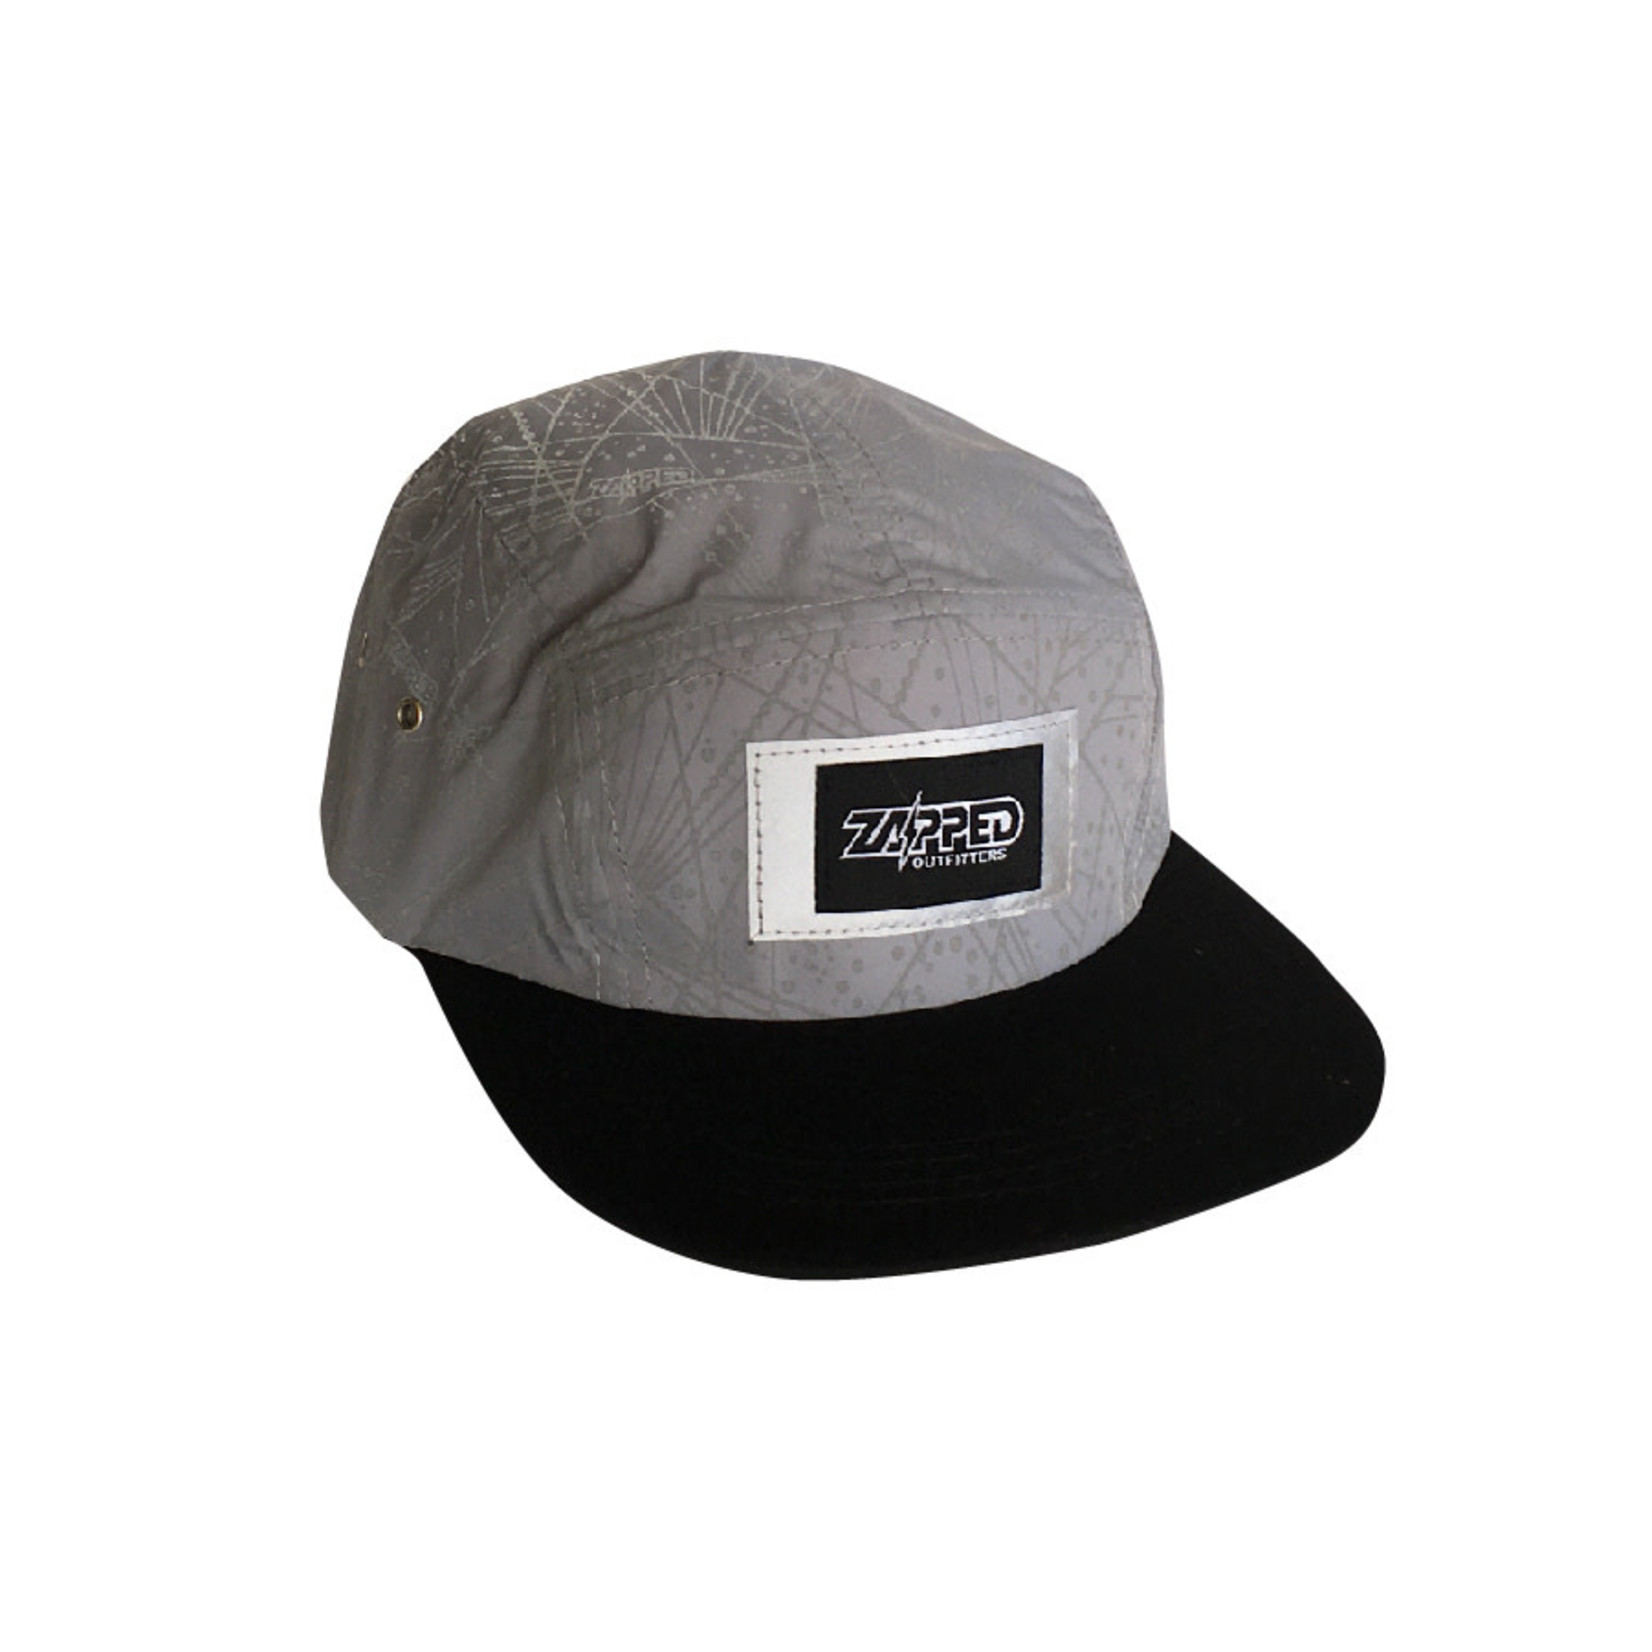 Zapped Outfitters Zapped 5-Panel Hat